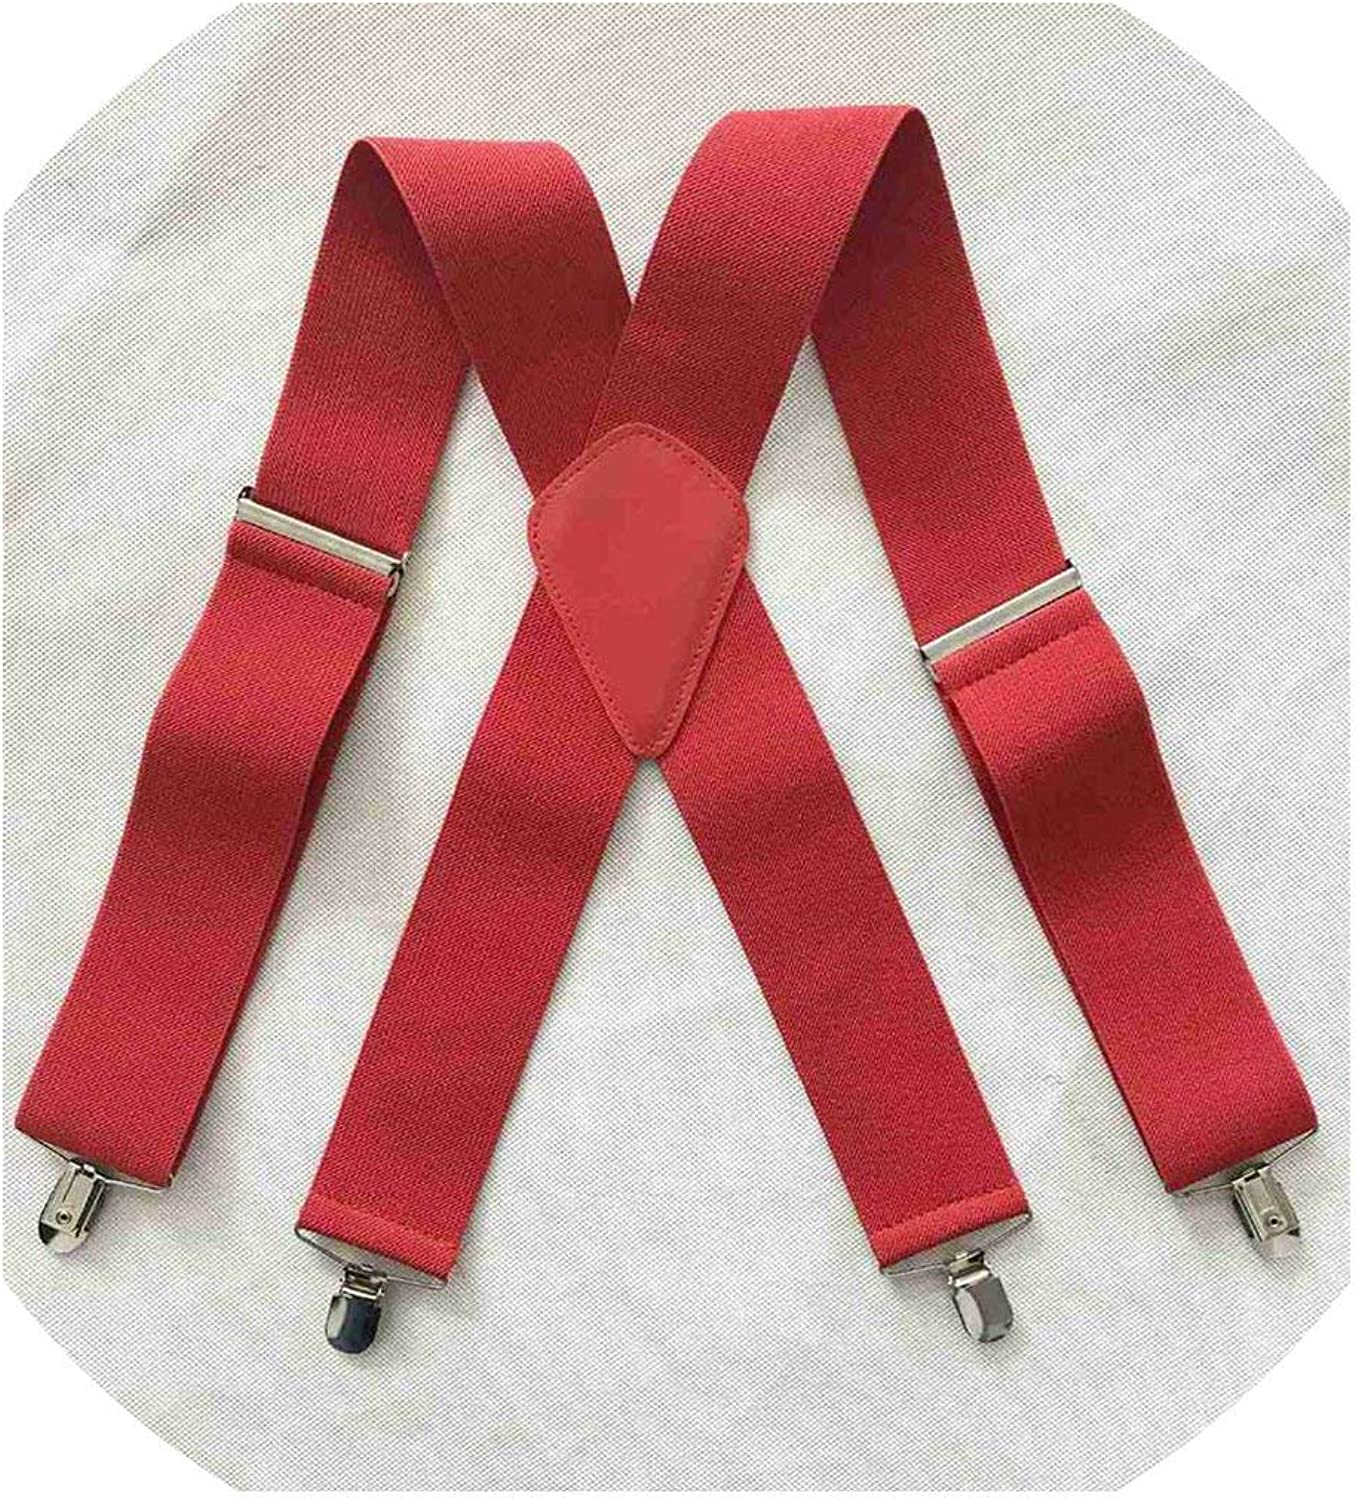 Back Elastic Duty Braces MenS Suspenders 2 Inch 50Mm Wide Adjustable Four Clip-On X